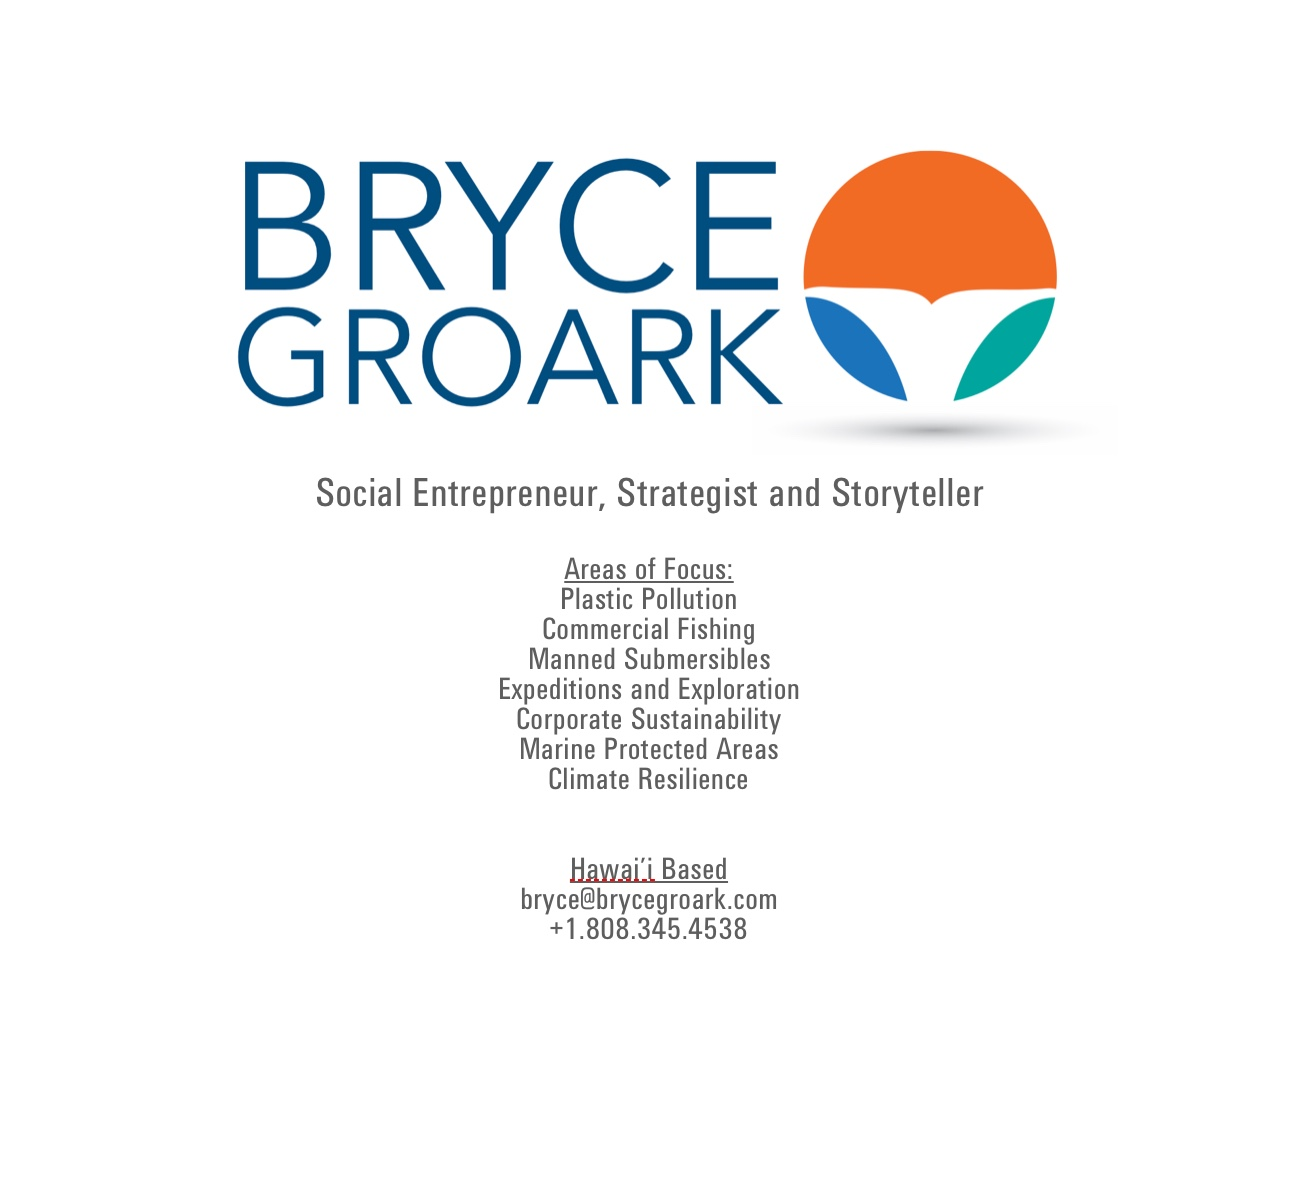 bryce-groark-home-page